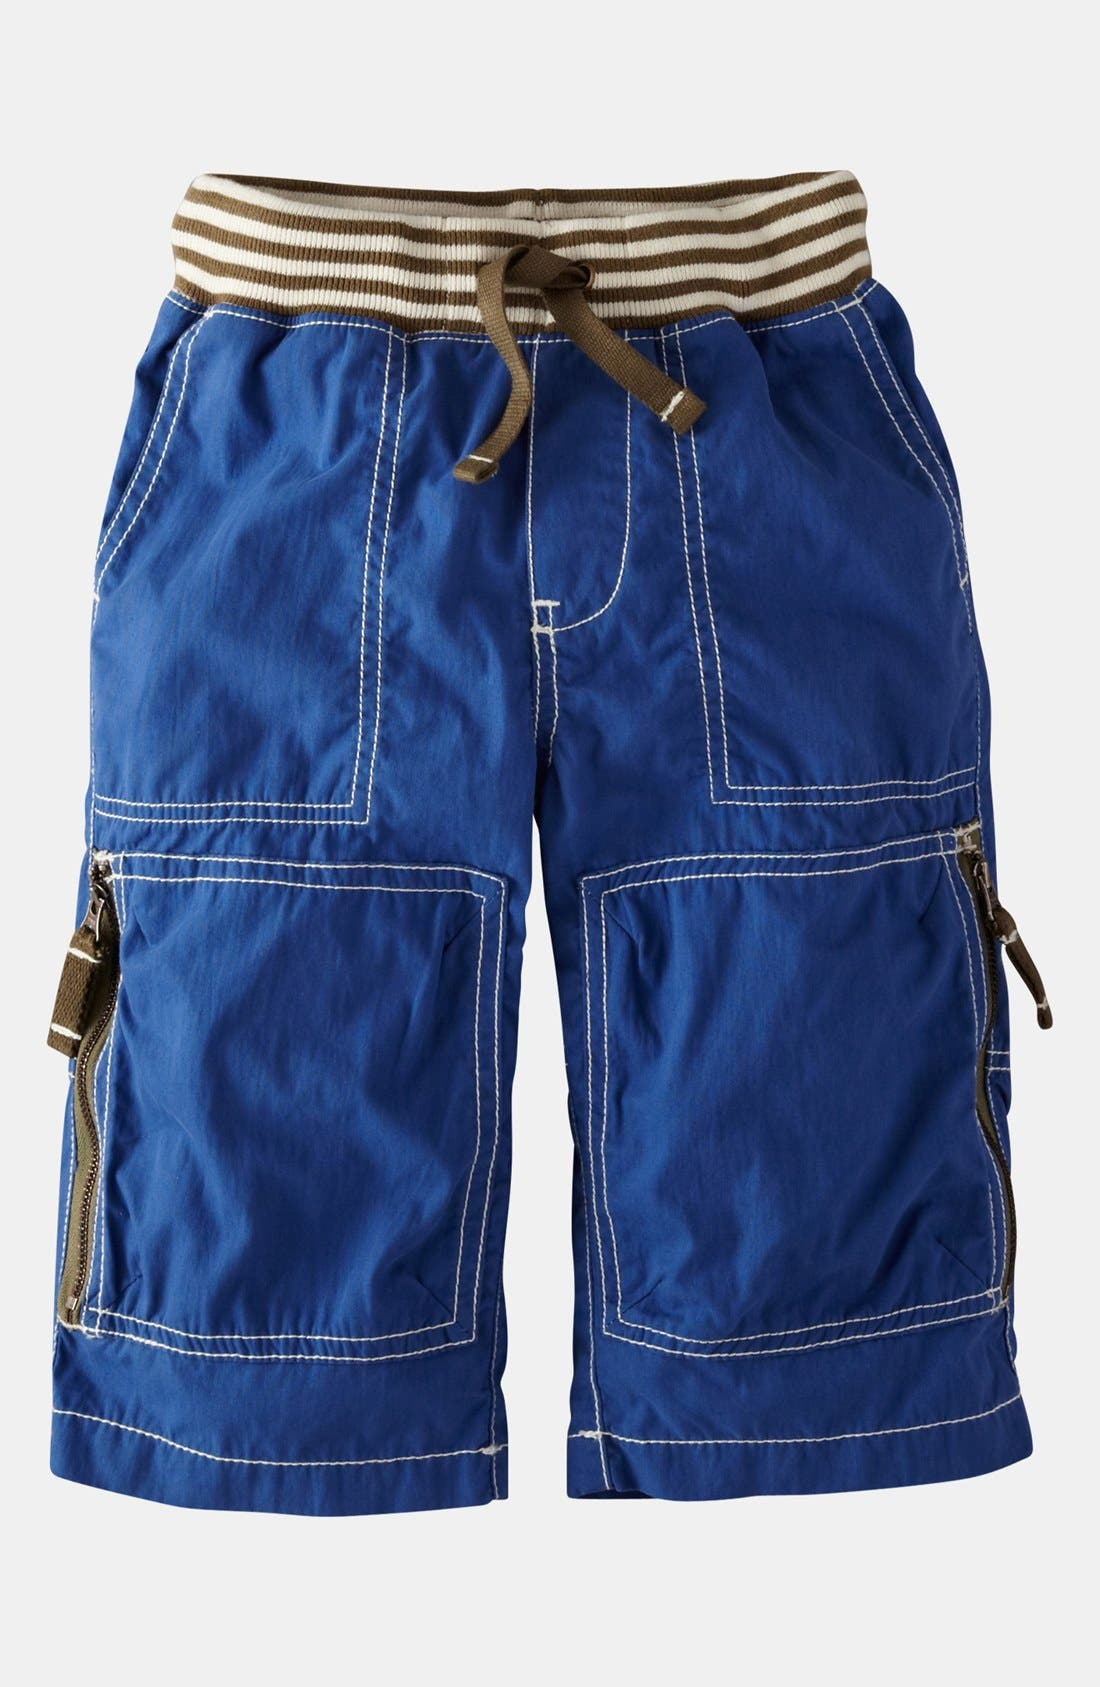 Alternate Image 1 Selected - Mini Boden 'Techno' Shorts (Toddler)